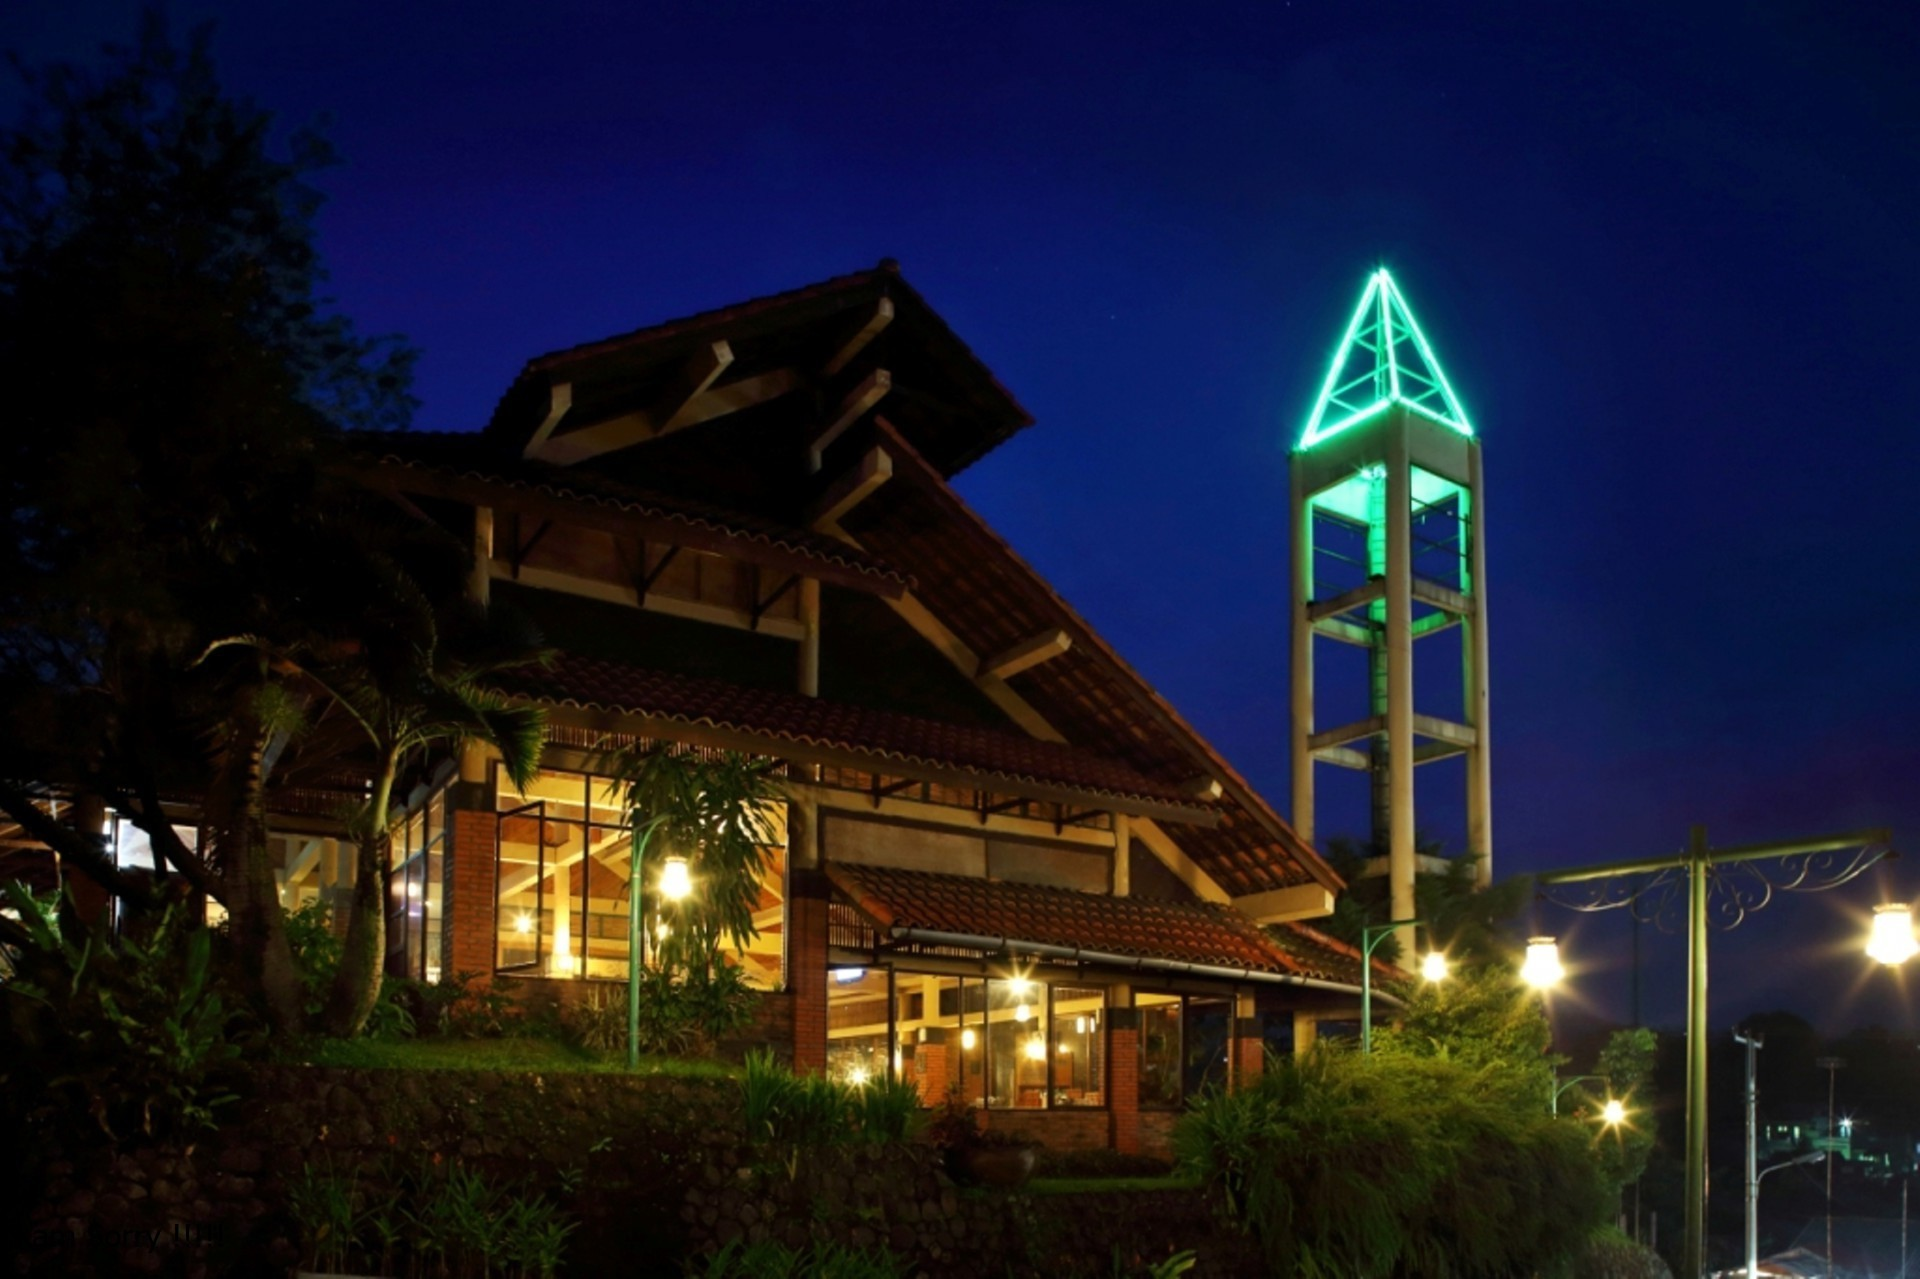 Athalia Resort Hotel Reservation Voucher Puncak Yasmin And Conference For Your Holiday In